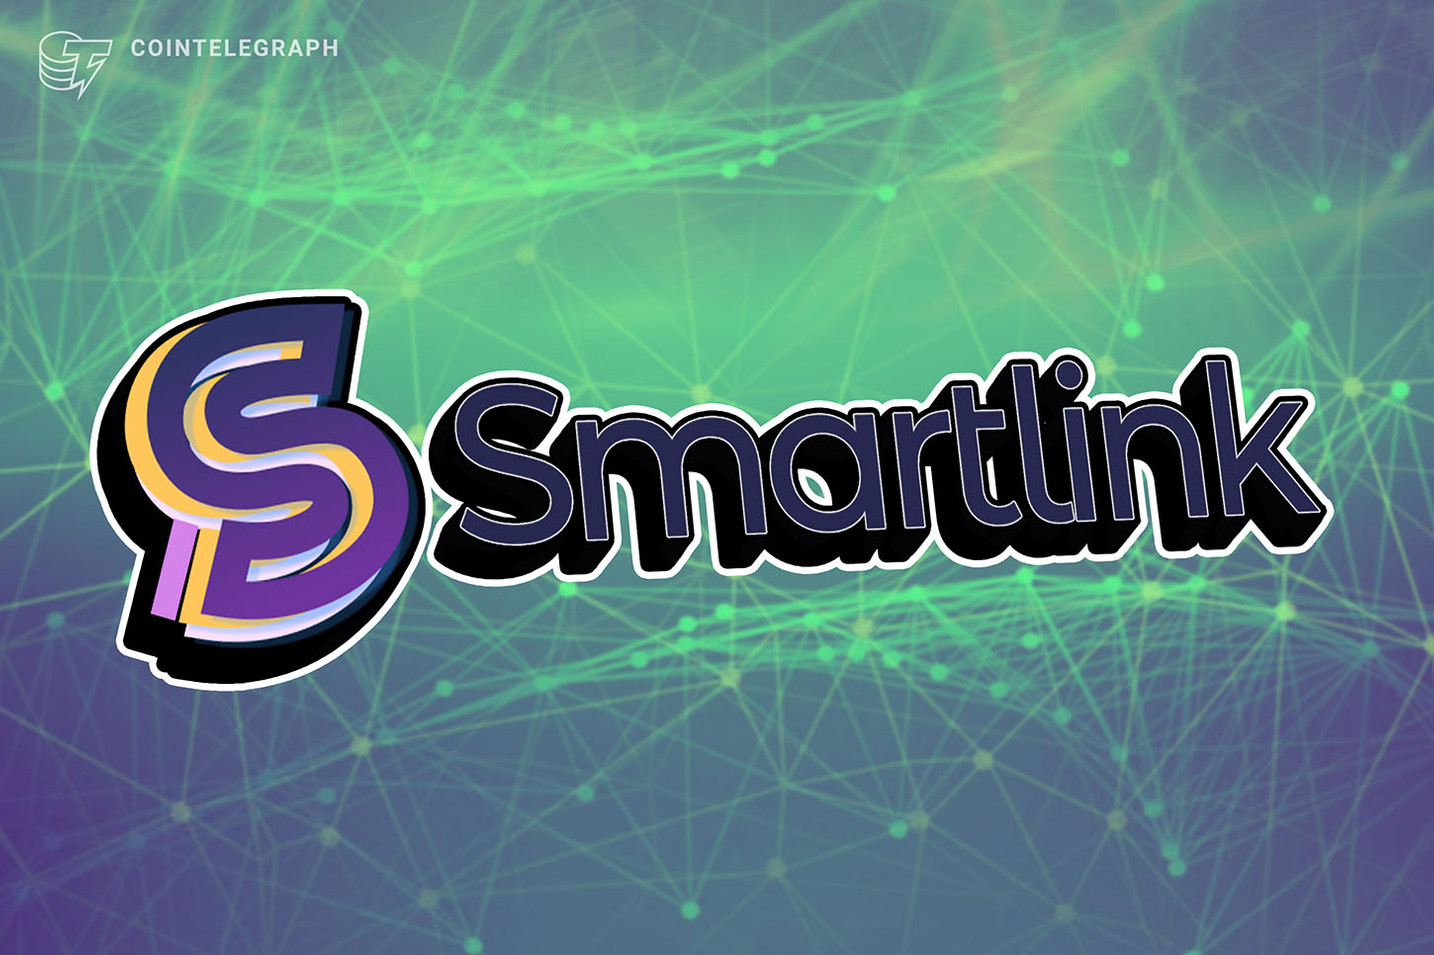 Smartlink unveils its backers following its private sale of $500K